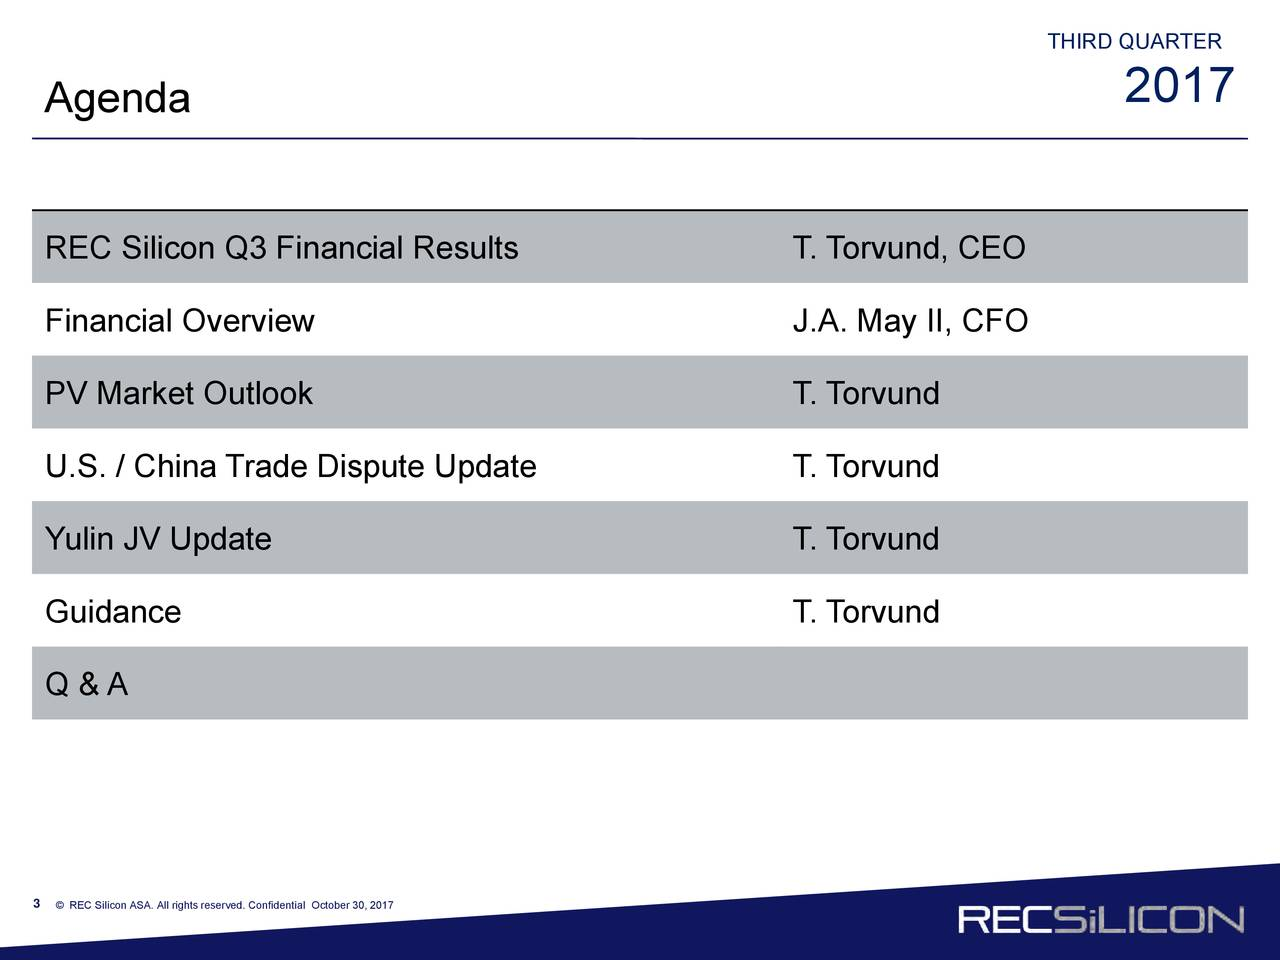 2017 Agenda REC Silicon Q3 Financial Results T. Torvund, CEO Financial Overview J.A. May II, CFO PV Market Outlook T. Torvund U.S. / China Trade Dispute Update T. Torvund Yulin JV Update T. Torvund Guidance T. Torvund Q & A 3 © REC Silicon ASA. All rights reserved. Confidential October 30, 2017